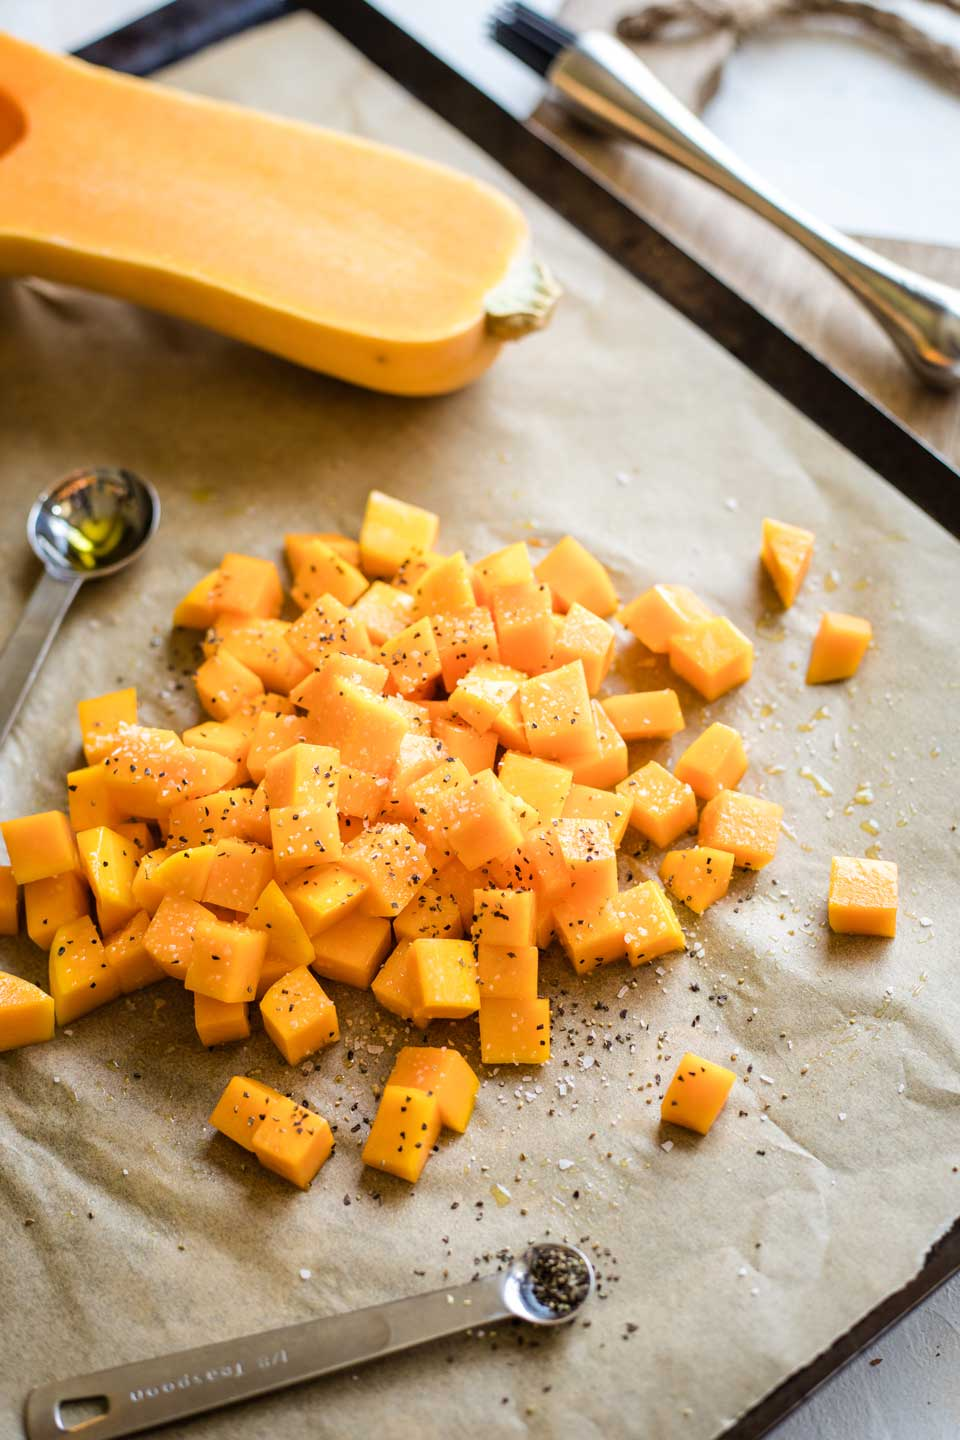 cubed squash piled on parchment-lined baking sheet, being tossed with olive oil, salt, and pepper